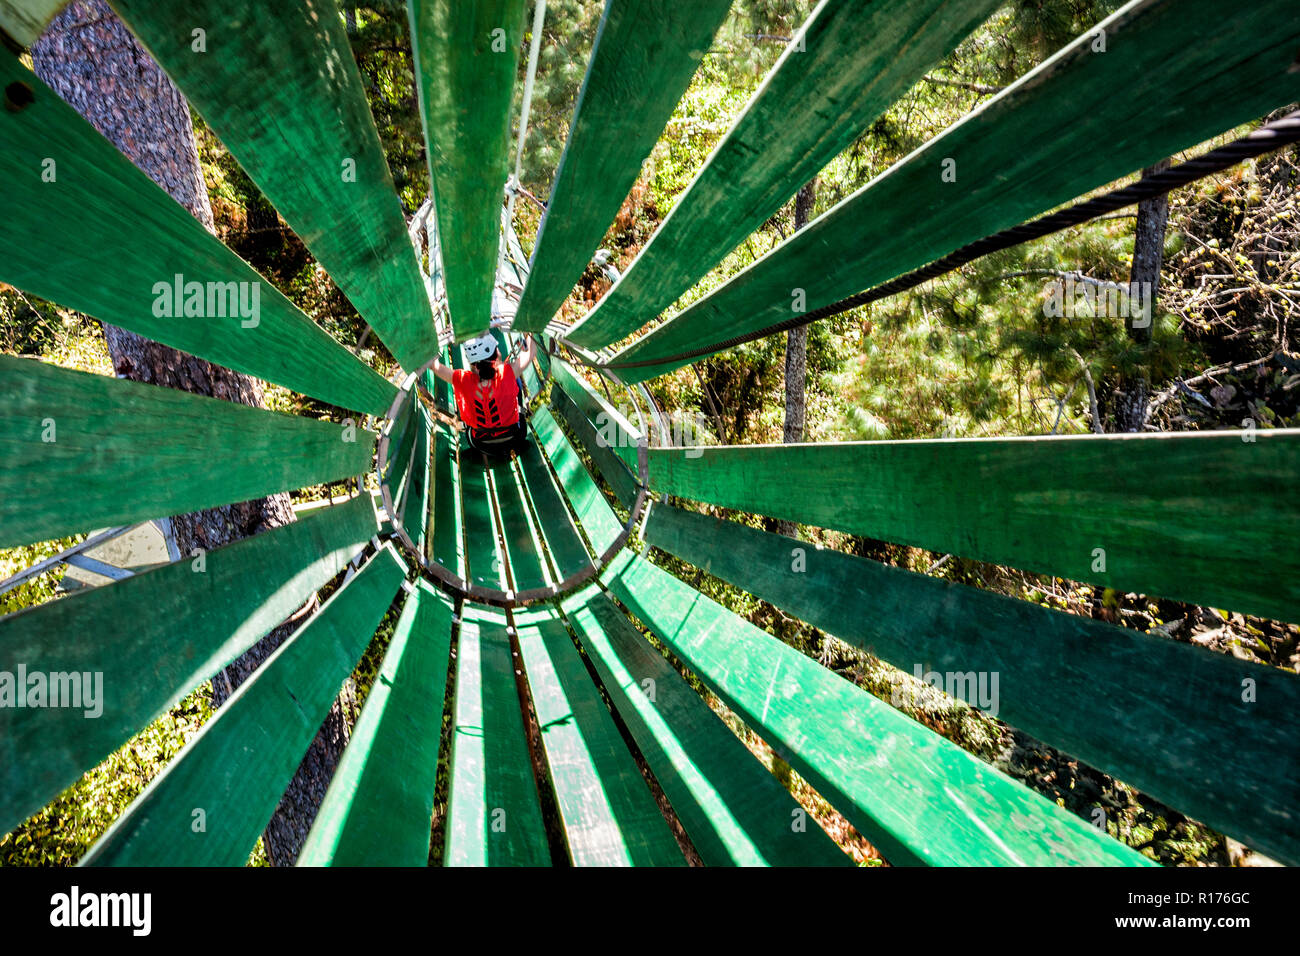 Wooden tunnel on the hanging bridge at Zirahuen Forest and Resort, Michoacan, Mexico. - Stock Image